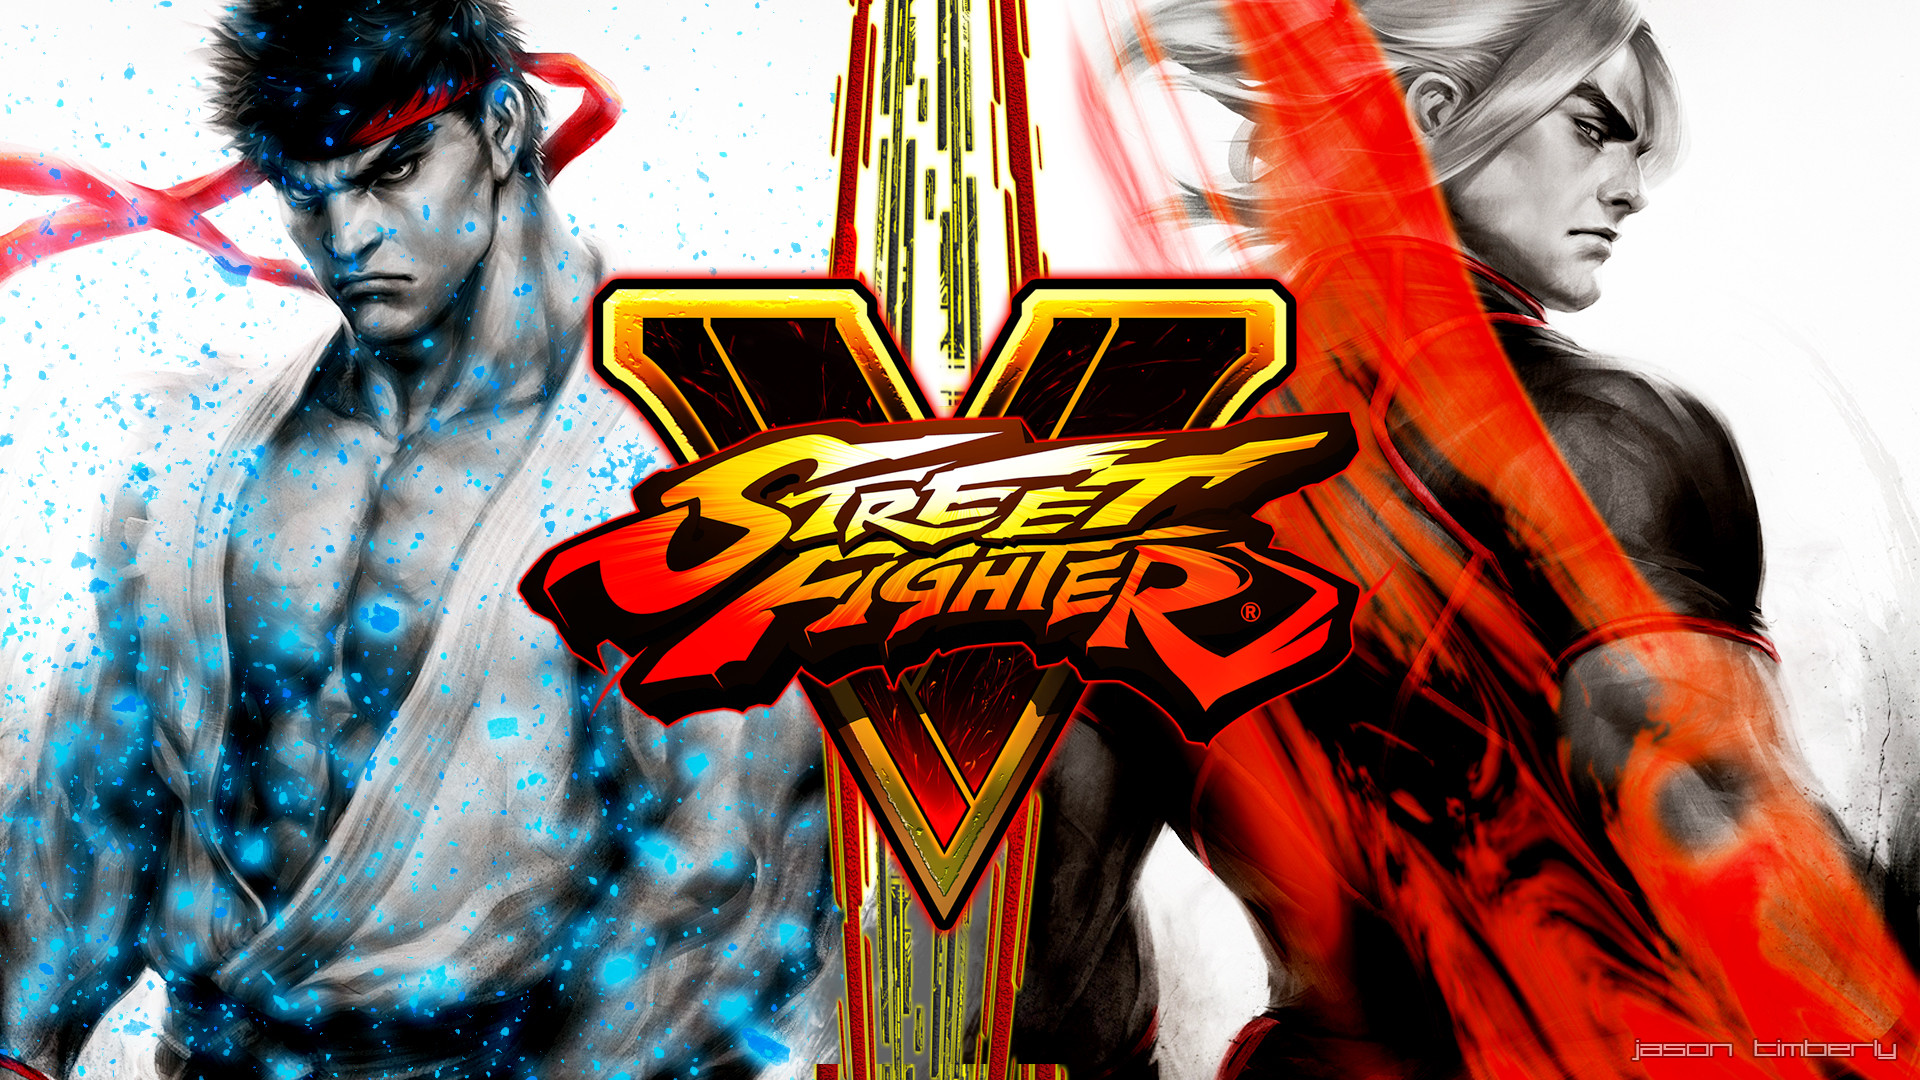 Video Game – Street Fighter Video Game Wallpaper